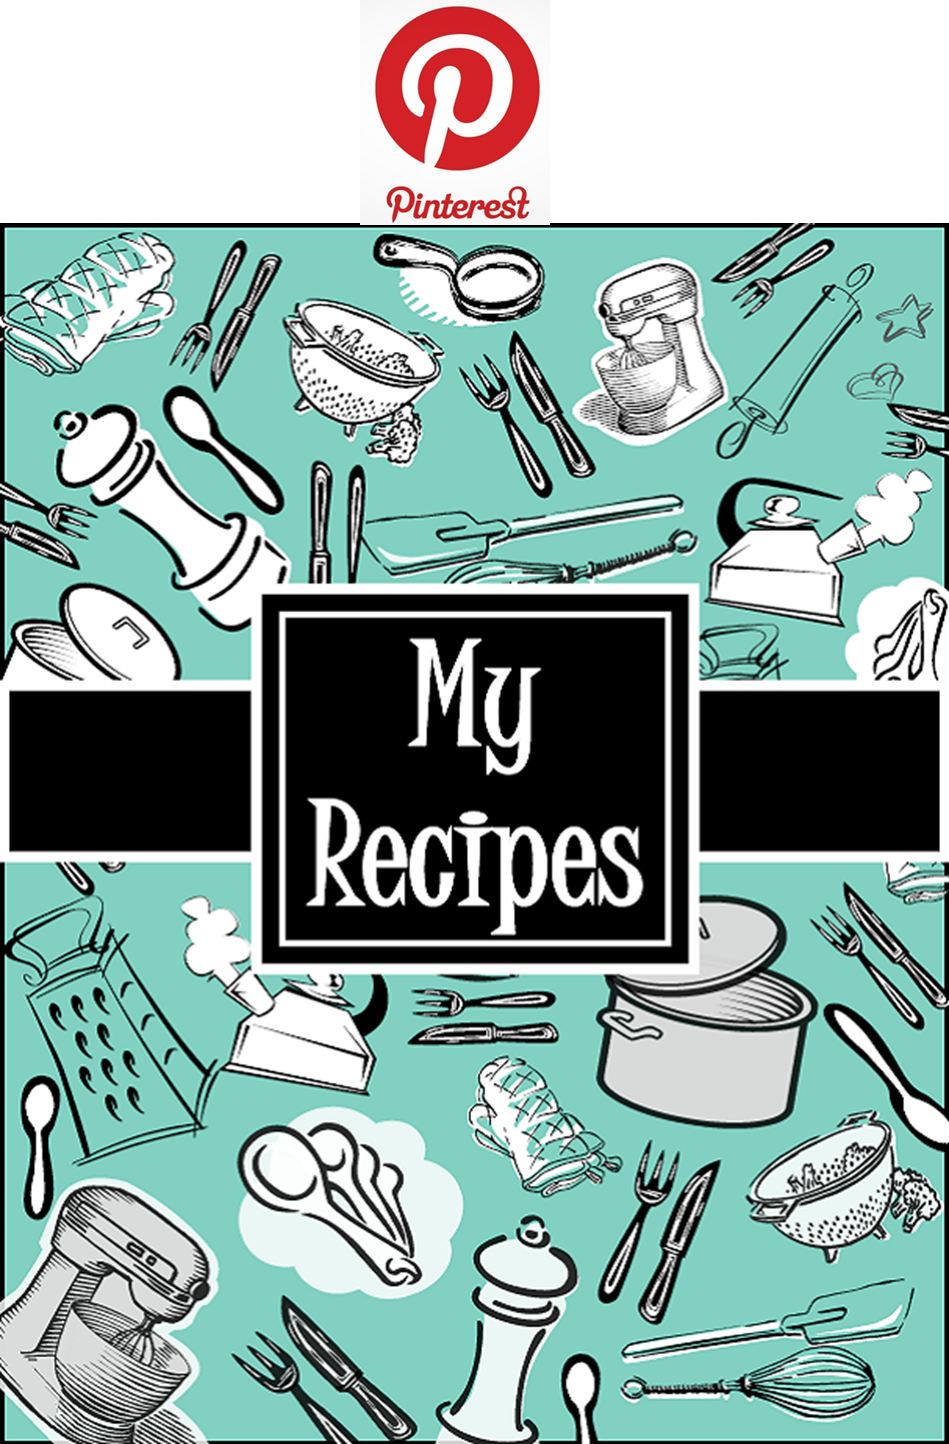 Impeccable image intended for recipe book cover printable